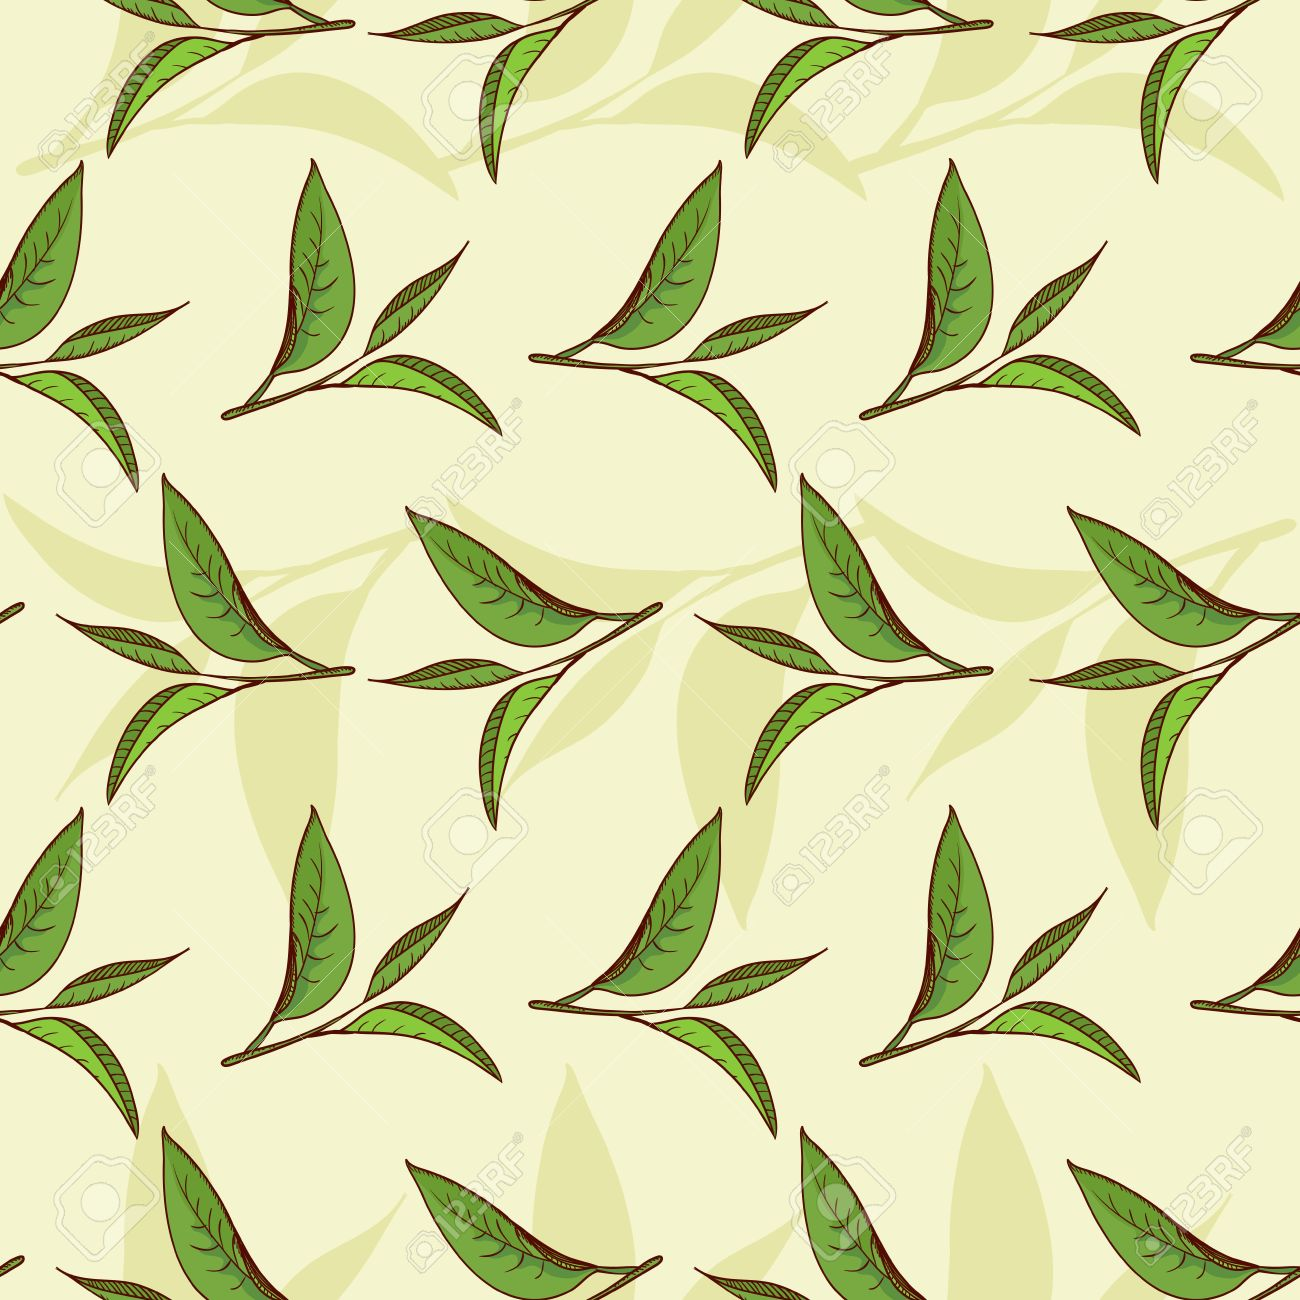 Seamless pattern illustrated nature, tea leaves and high-vitamin diet - 19105020